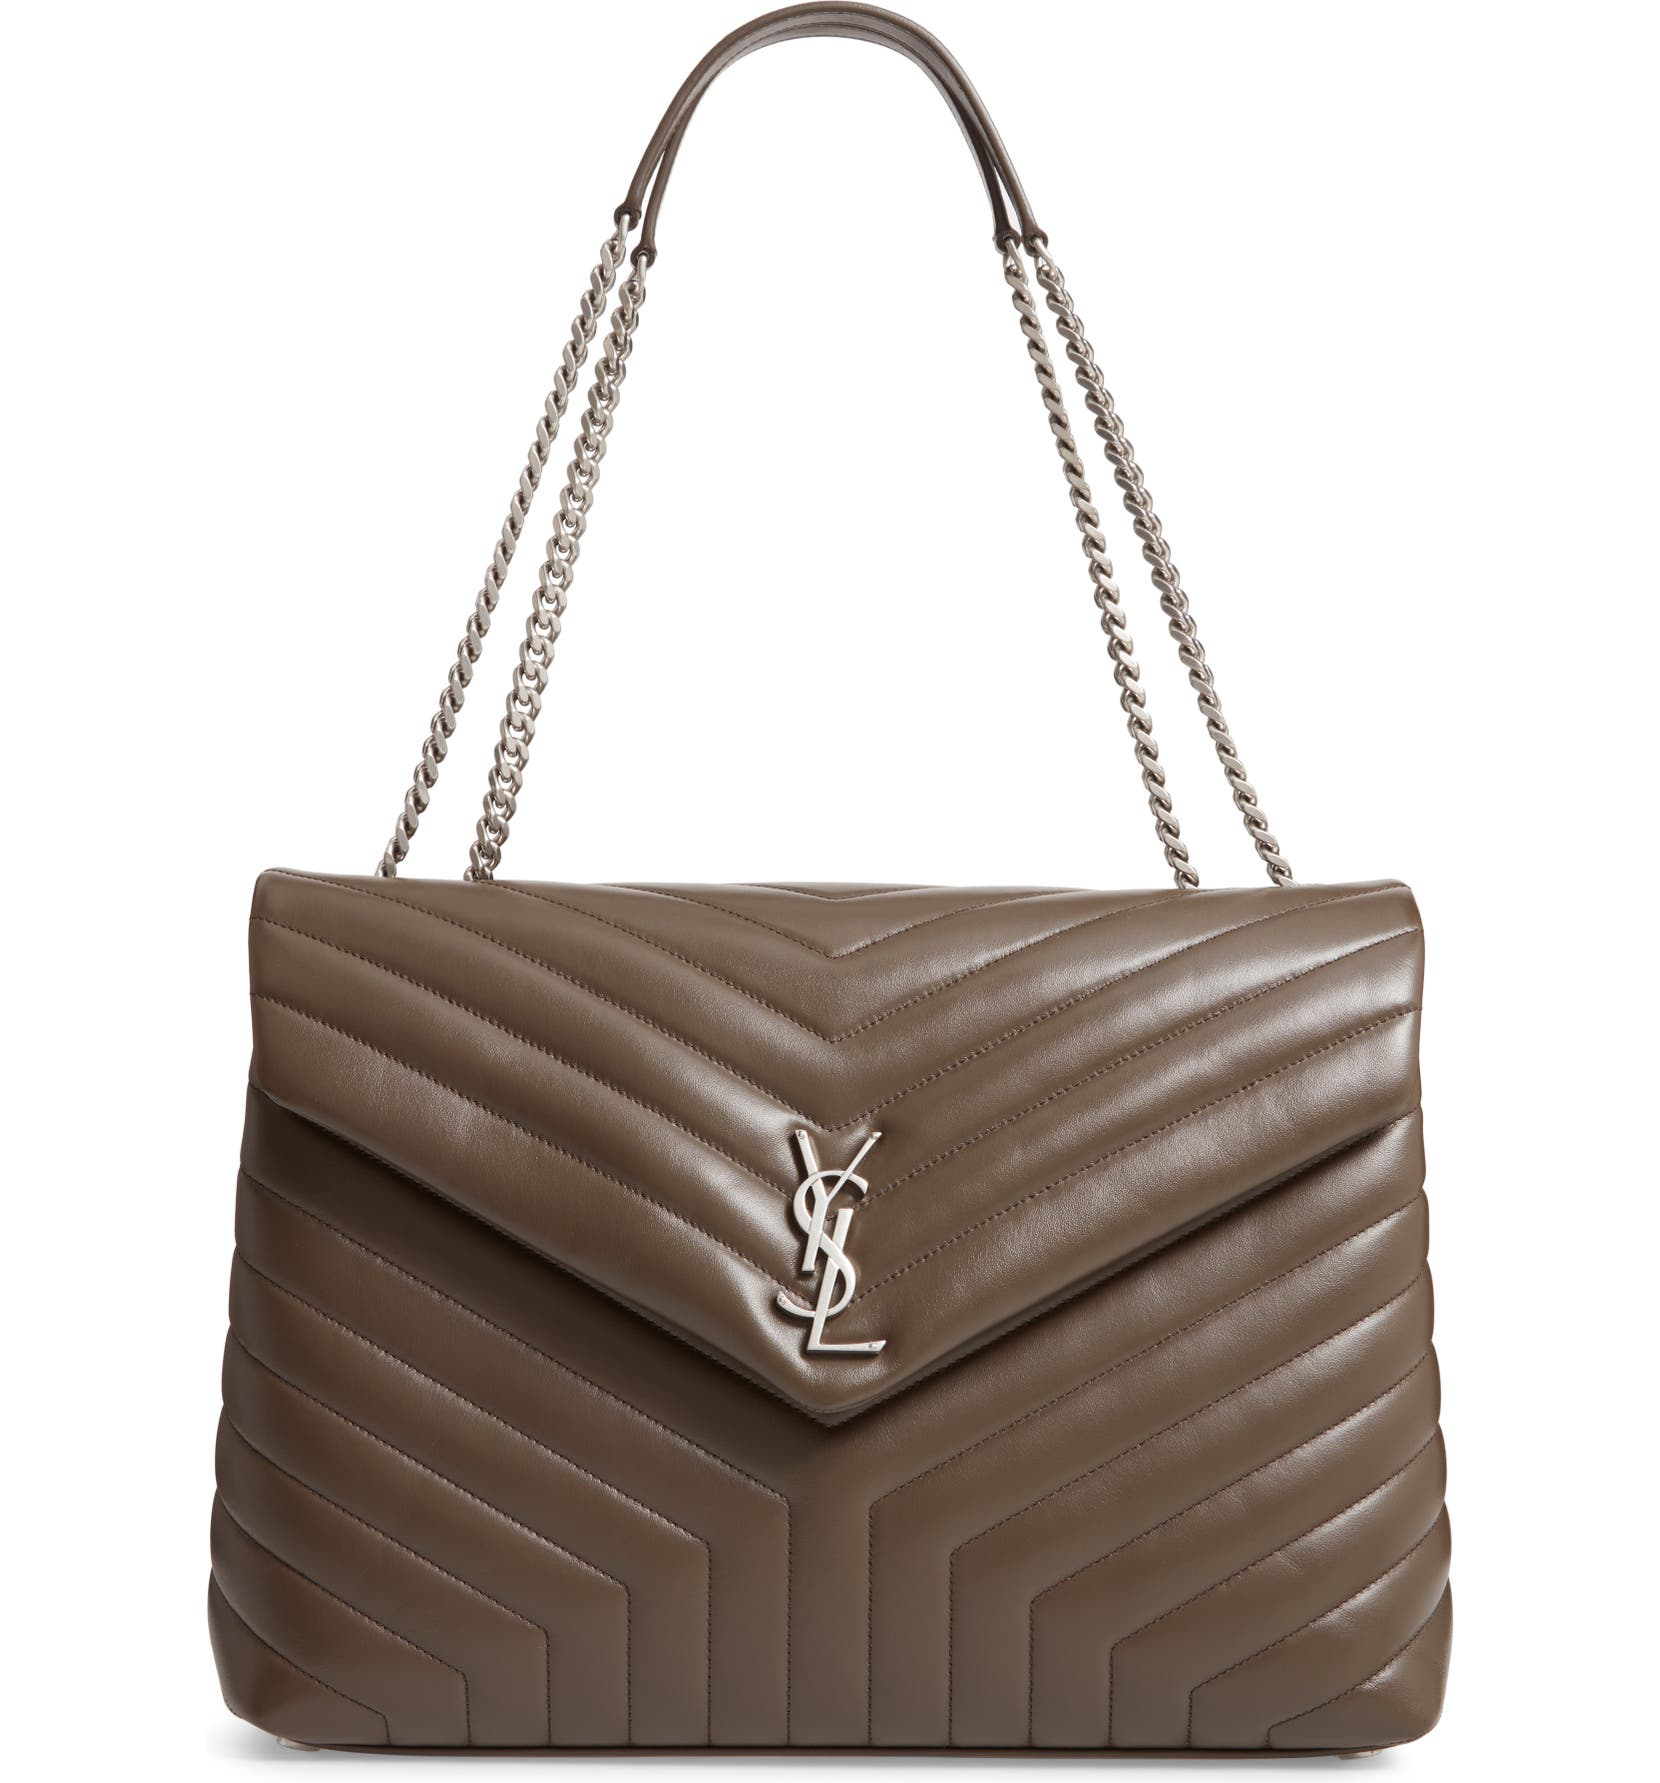 c52063bf093 Saint Laurent Large Loulou Matelassé Leather Shoulder Bag